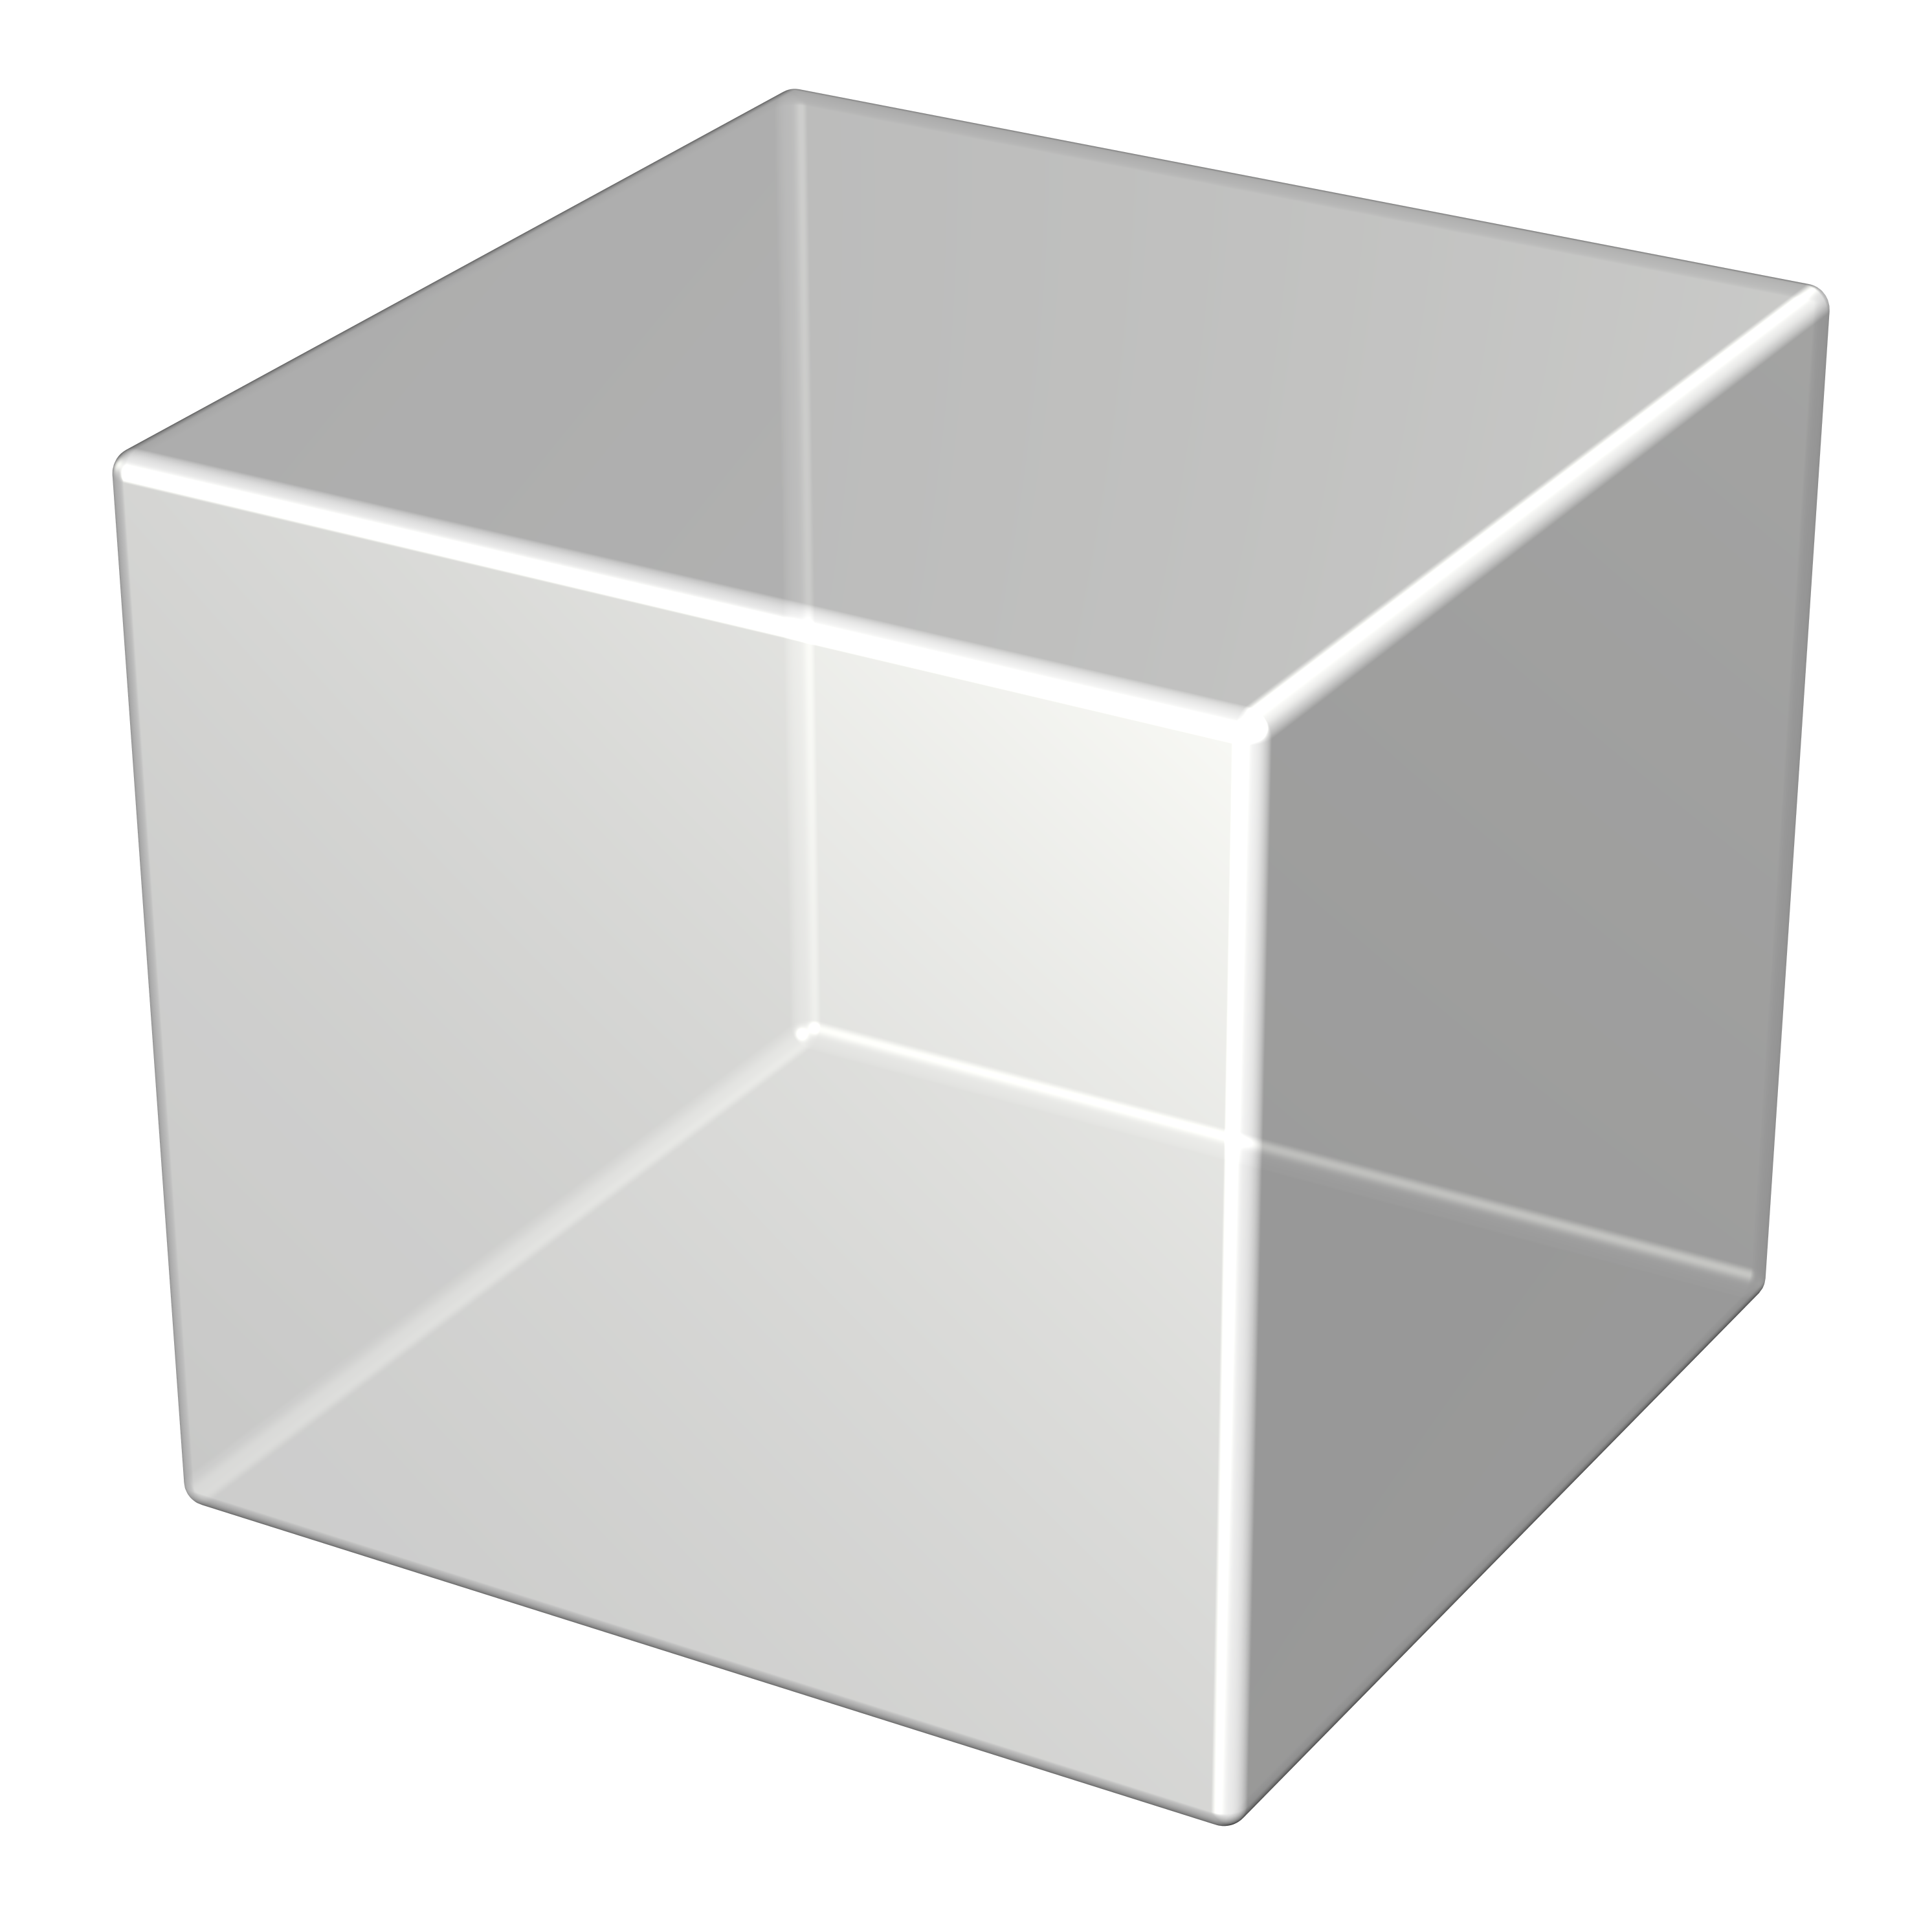 3D Silver Cube PNG Photo image #47031